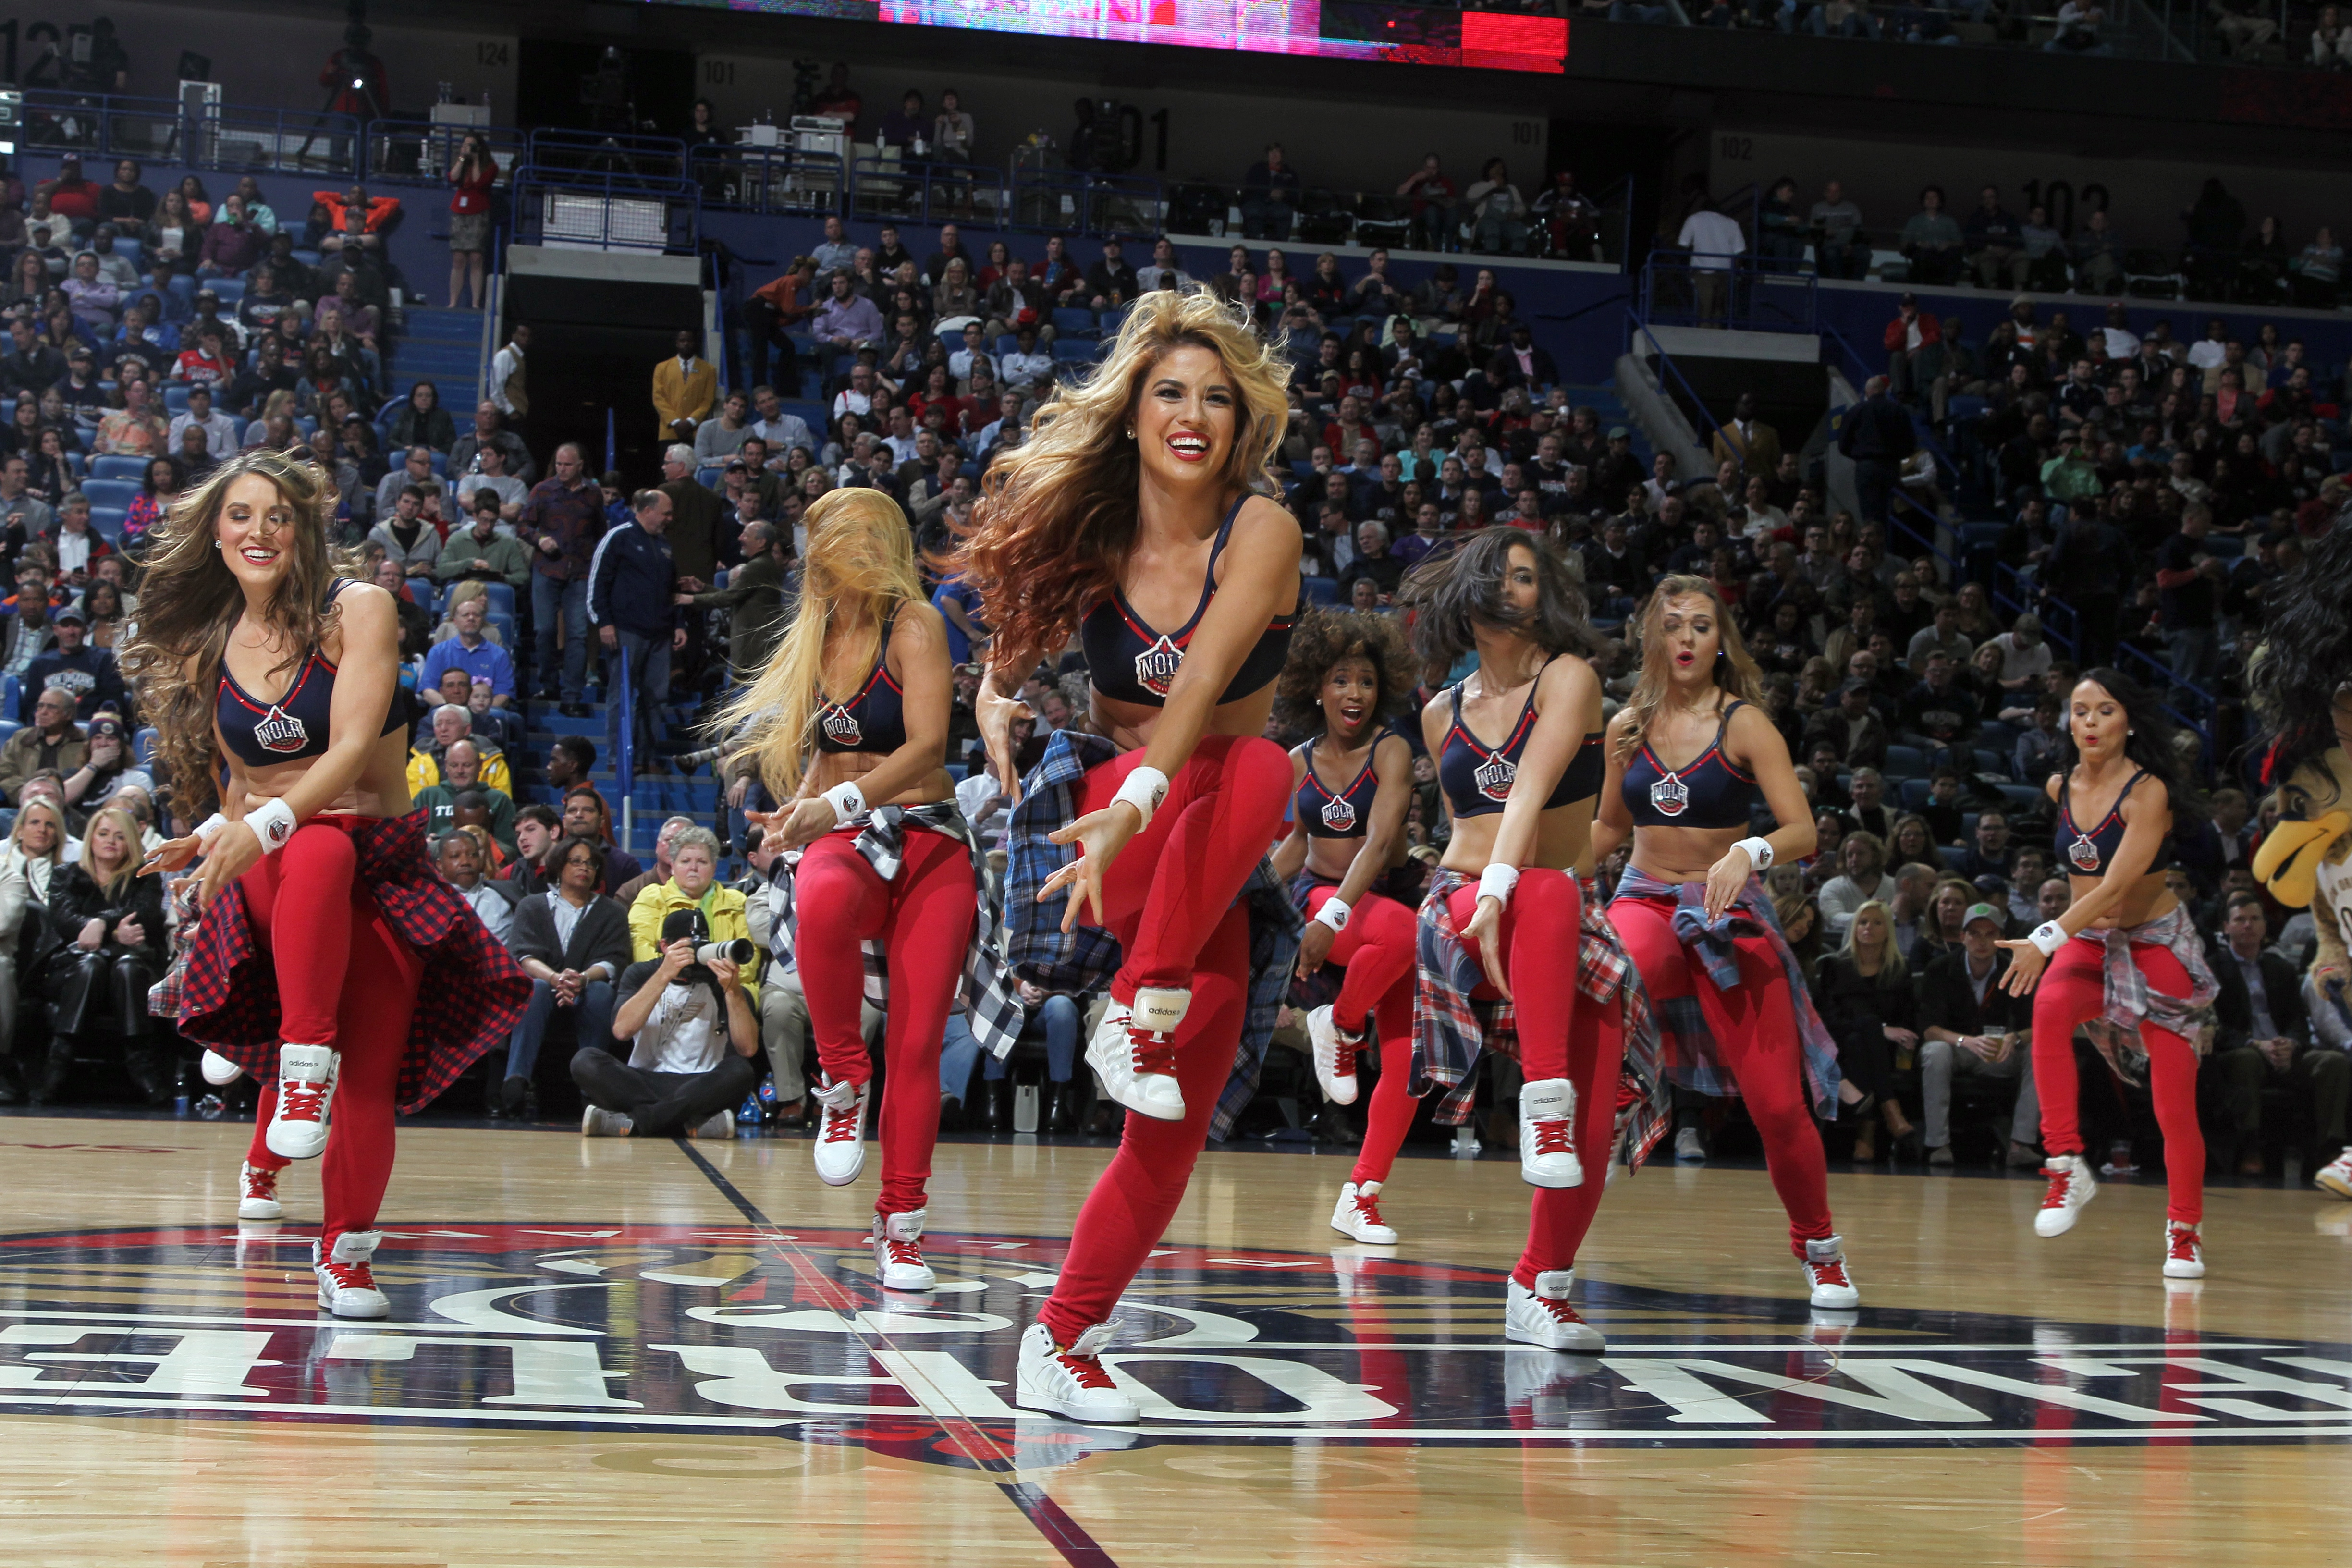 Pelicans (1-30-2015) Team New |  Dance Clippers from game